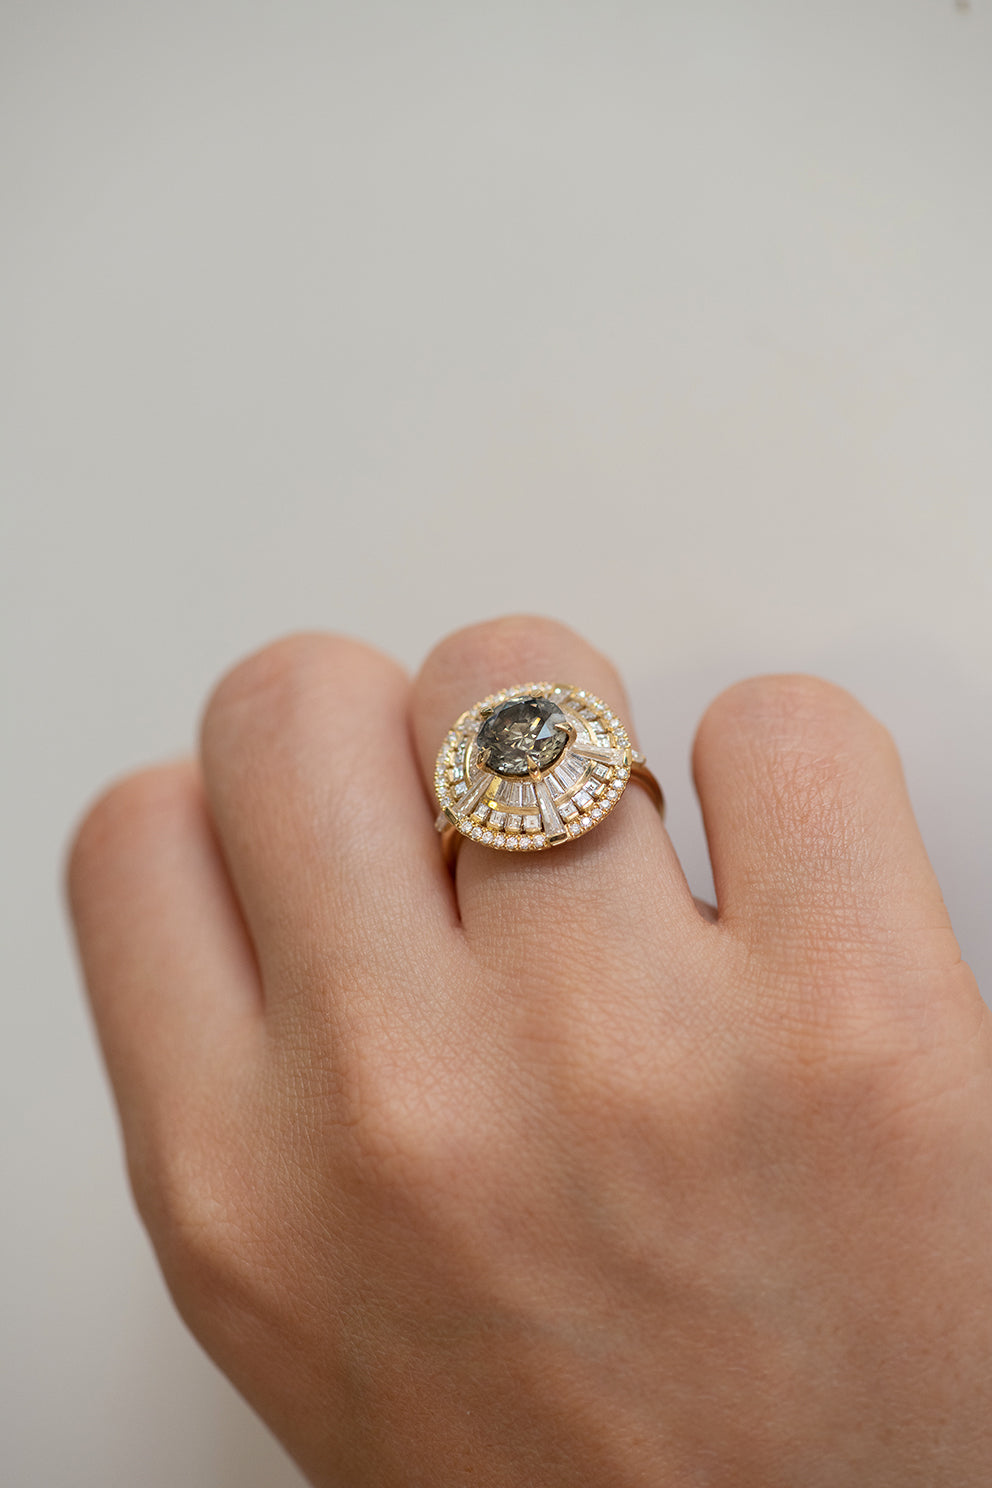 Grey Diamond Temple Ring with Long Tapered Baguette Diamonds on Hand Below View